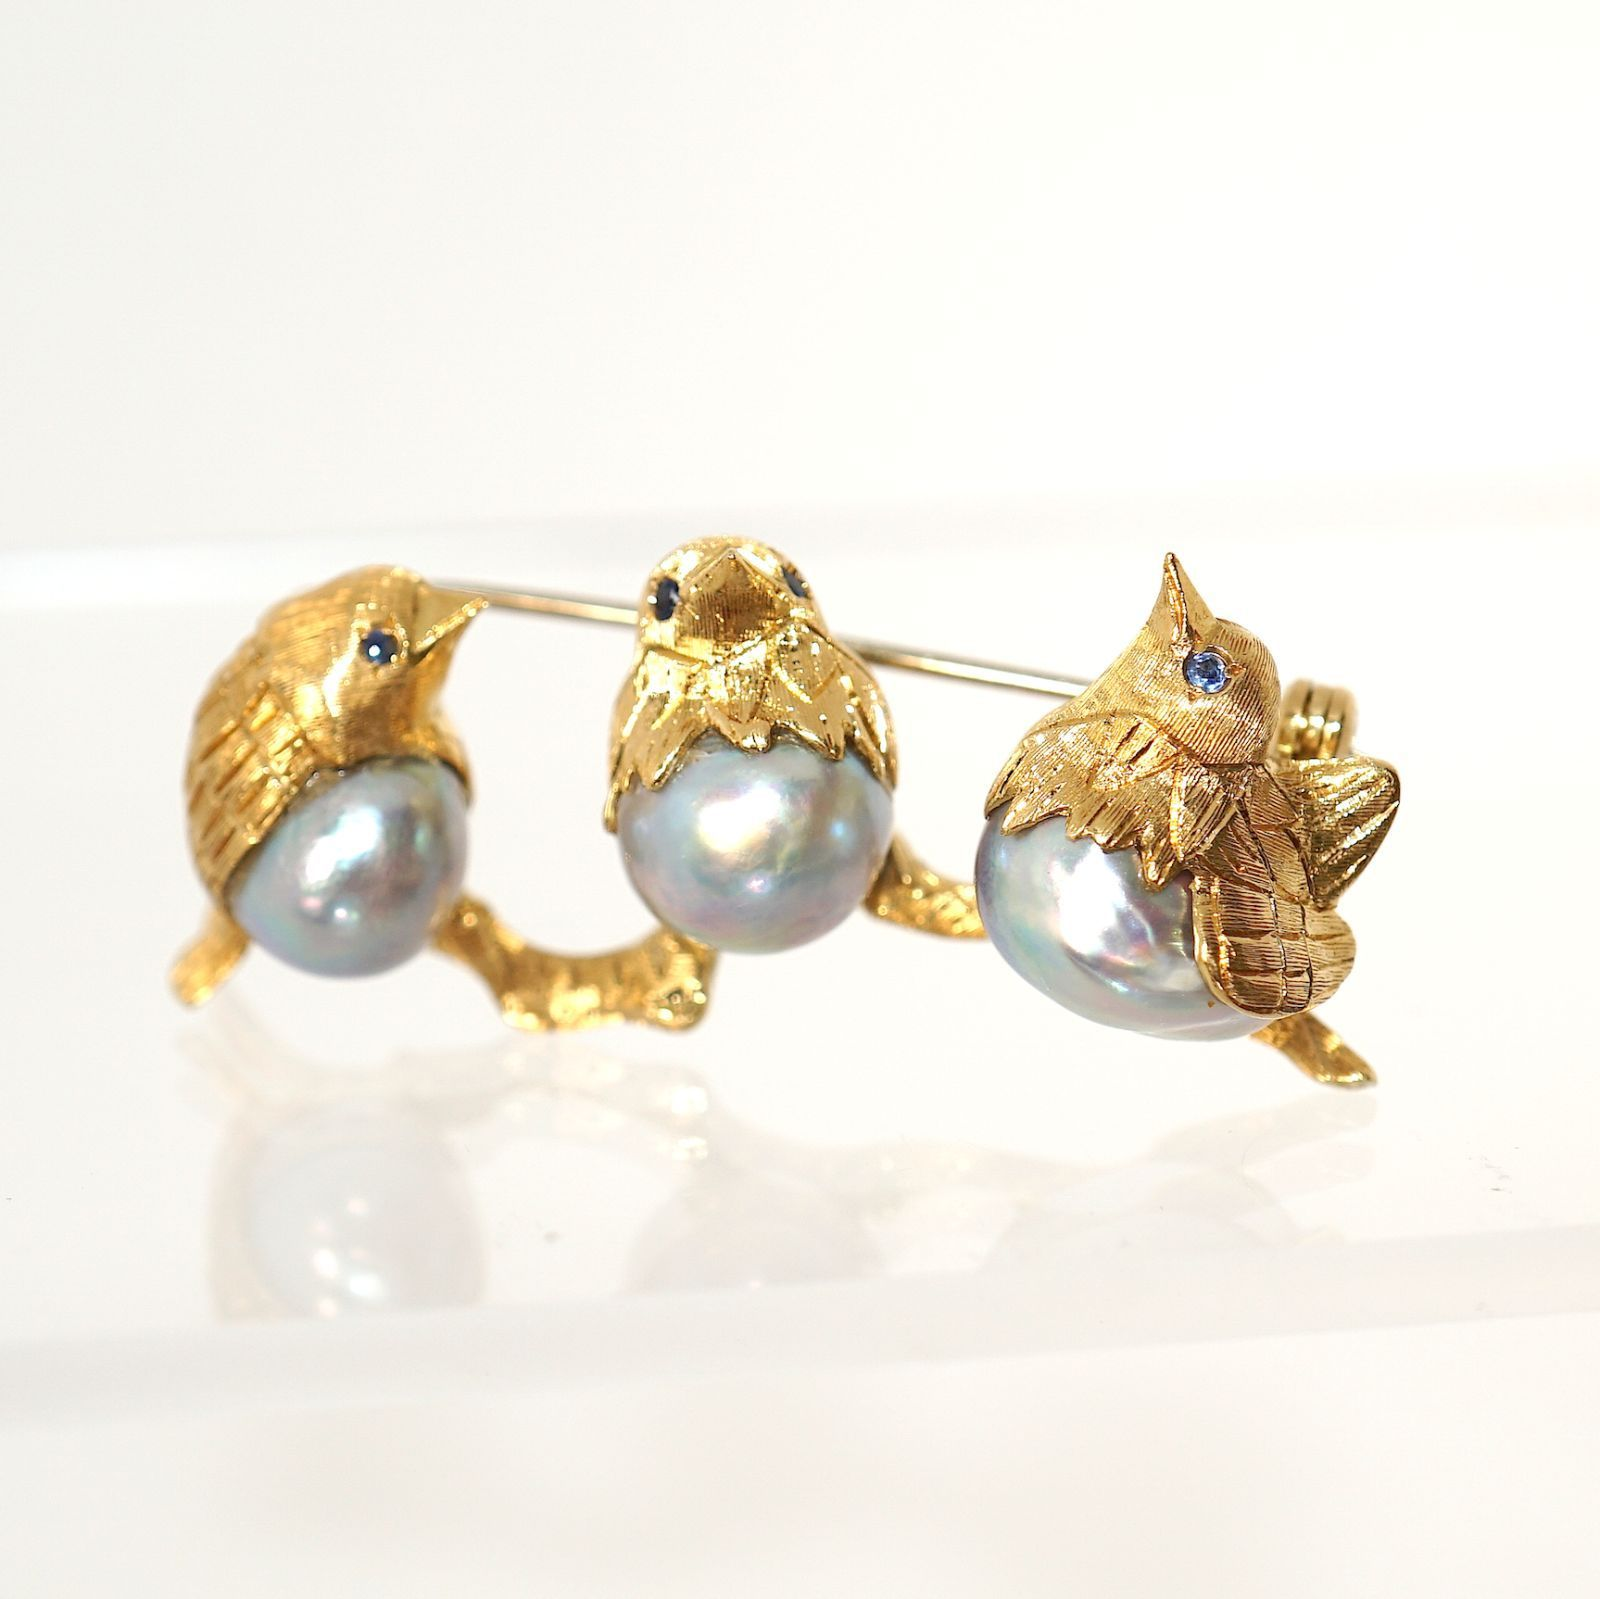 18K Gold Tahitian Silver Pearl Sapphire Singing Birds Brooch Fine Jewelry | eBay Three chirping bodies, 3 golden Italian birds on a branch as a brooch for your attention. Made of solid 18k yellow gold, with silver color Tahitian pearls as their body, and natural blue sapphire as eyes. Pearls are from left to right measured as 14mm, 11mm, 12mm. Brooch is 44mm wide. Will be coming with a certificate of authenticity and will be appraised for $3000.00. Buy-it-Now $1380